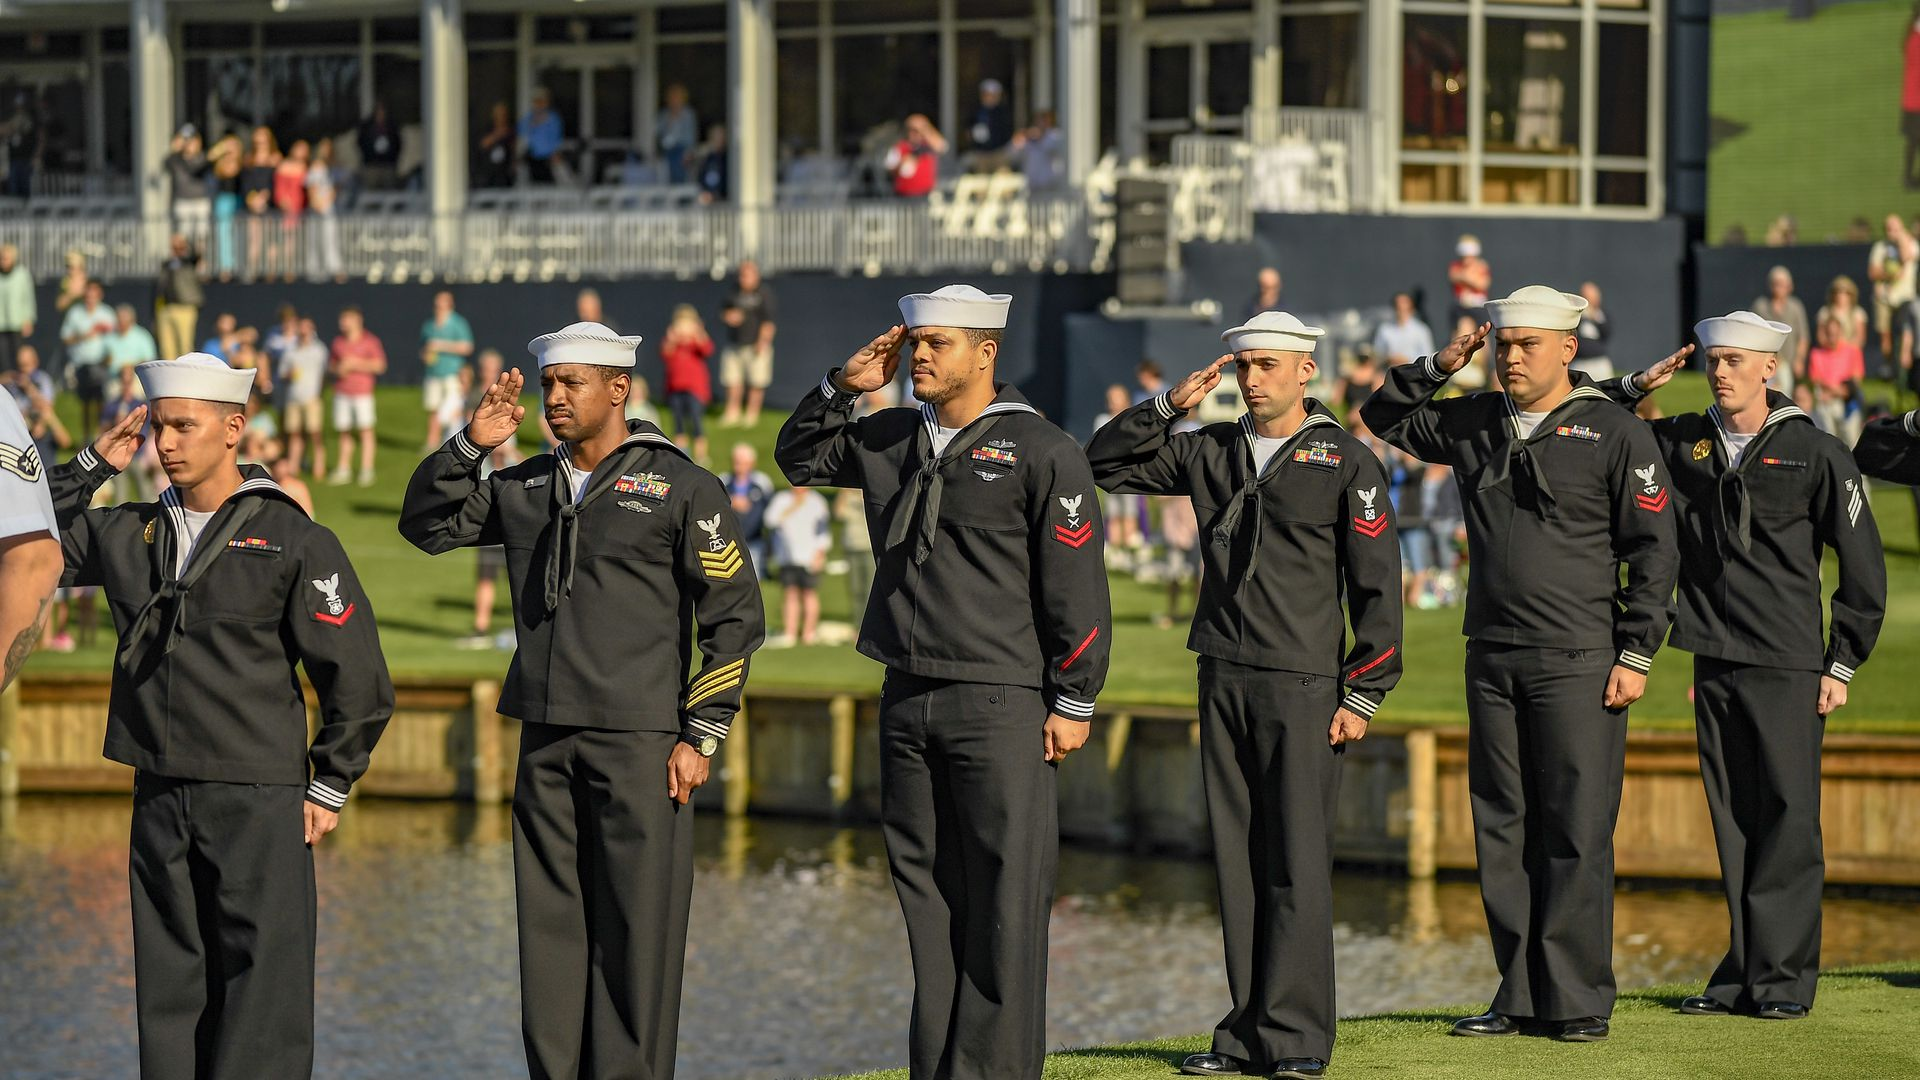 U.S. sailors saluting the flag